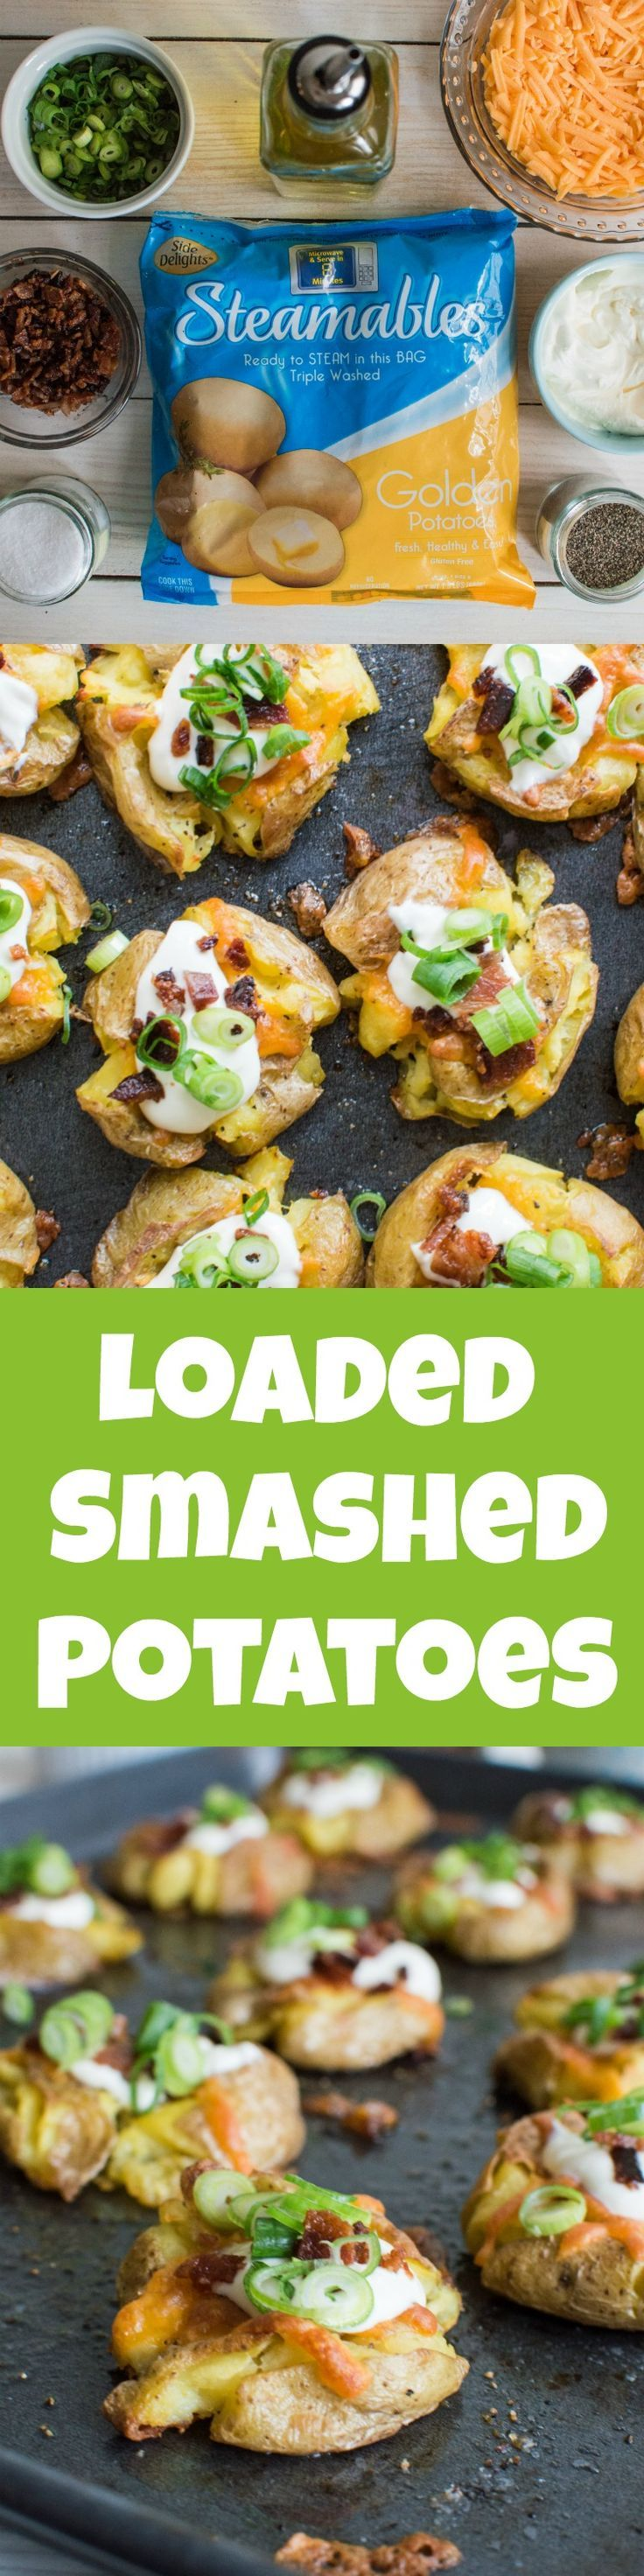 LOADED SMASHED POTATOES Loaded Smashed Potatoes — crispy smashed potatoes topped with cheddar cheese, bacon, sour cream, and scallions. A fun weeknight side dish or perfect party appetizer!